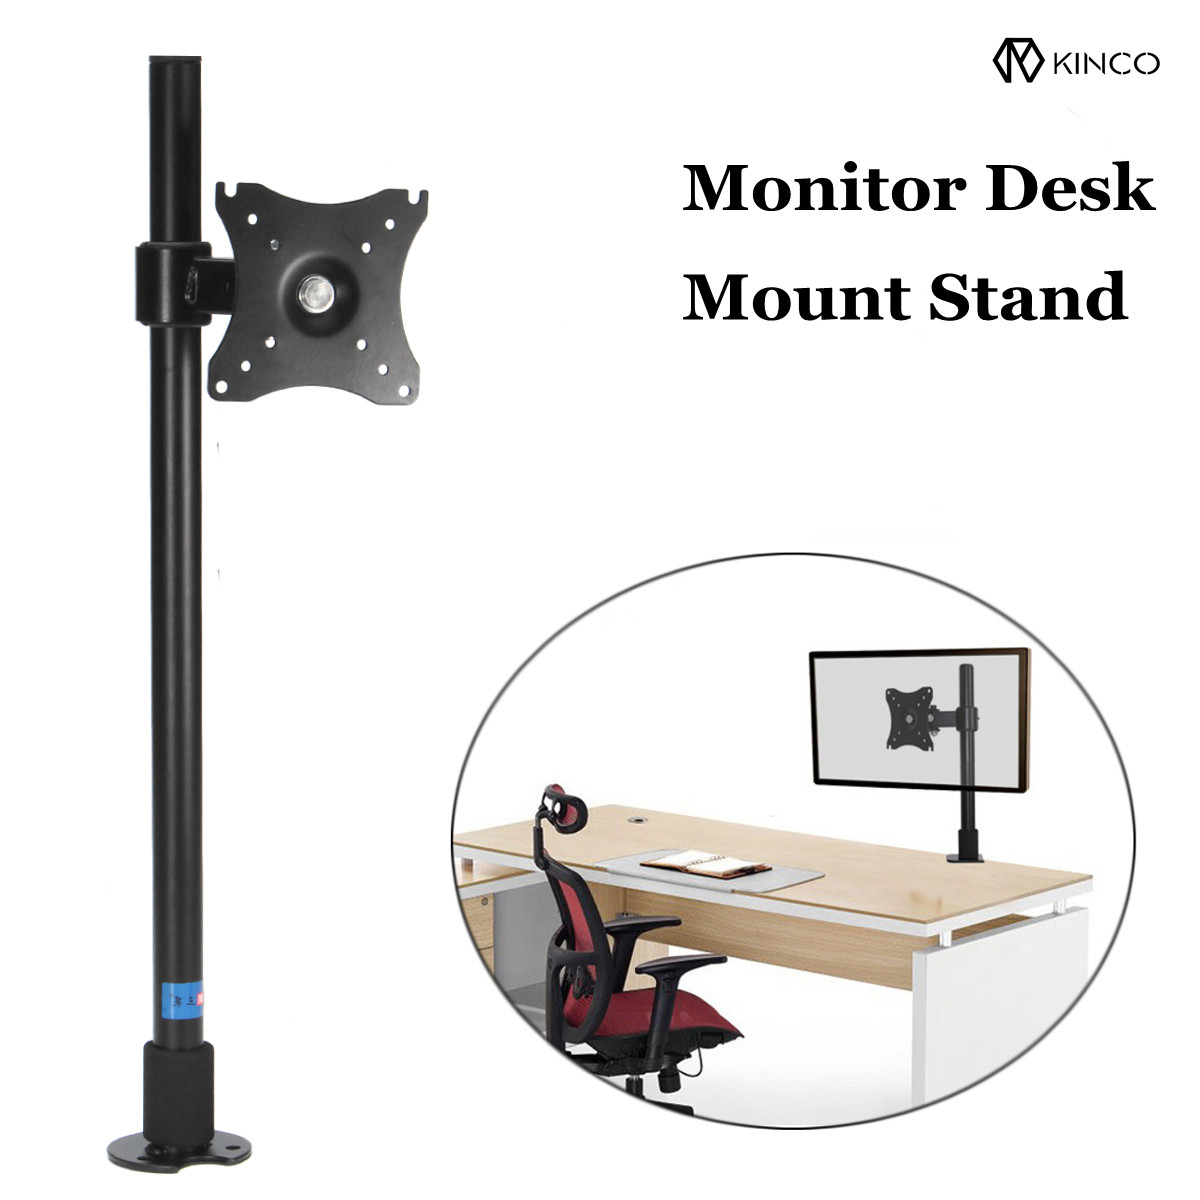 Monitor Stand Rotation Double Arm Adjustable Desktop Holder for Computer Monitor within 14-27 Inch TV Mount Bracket Clamp